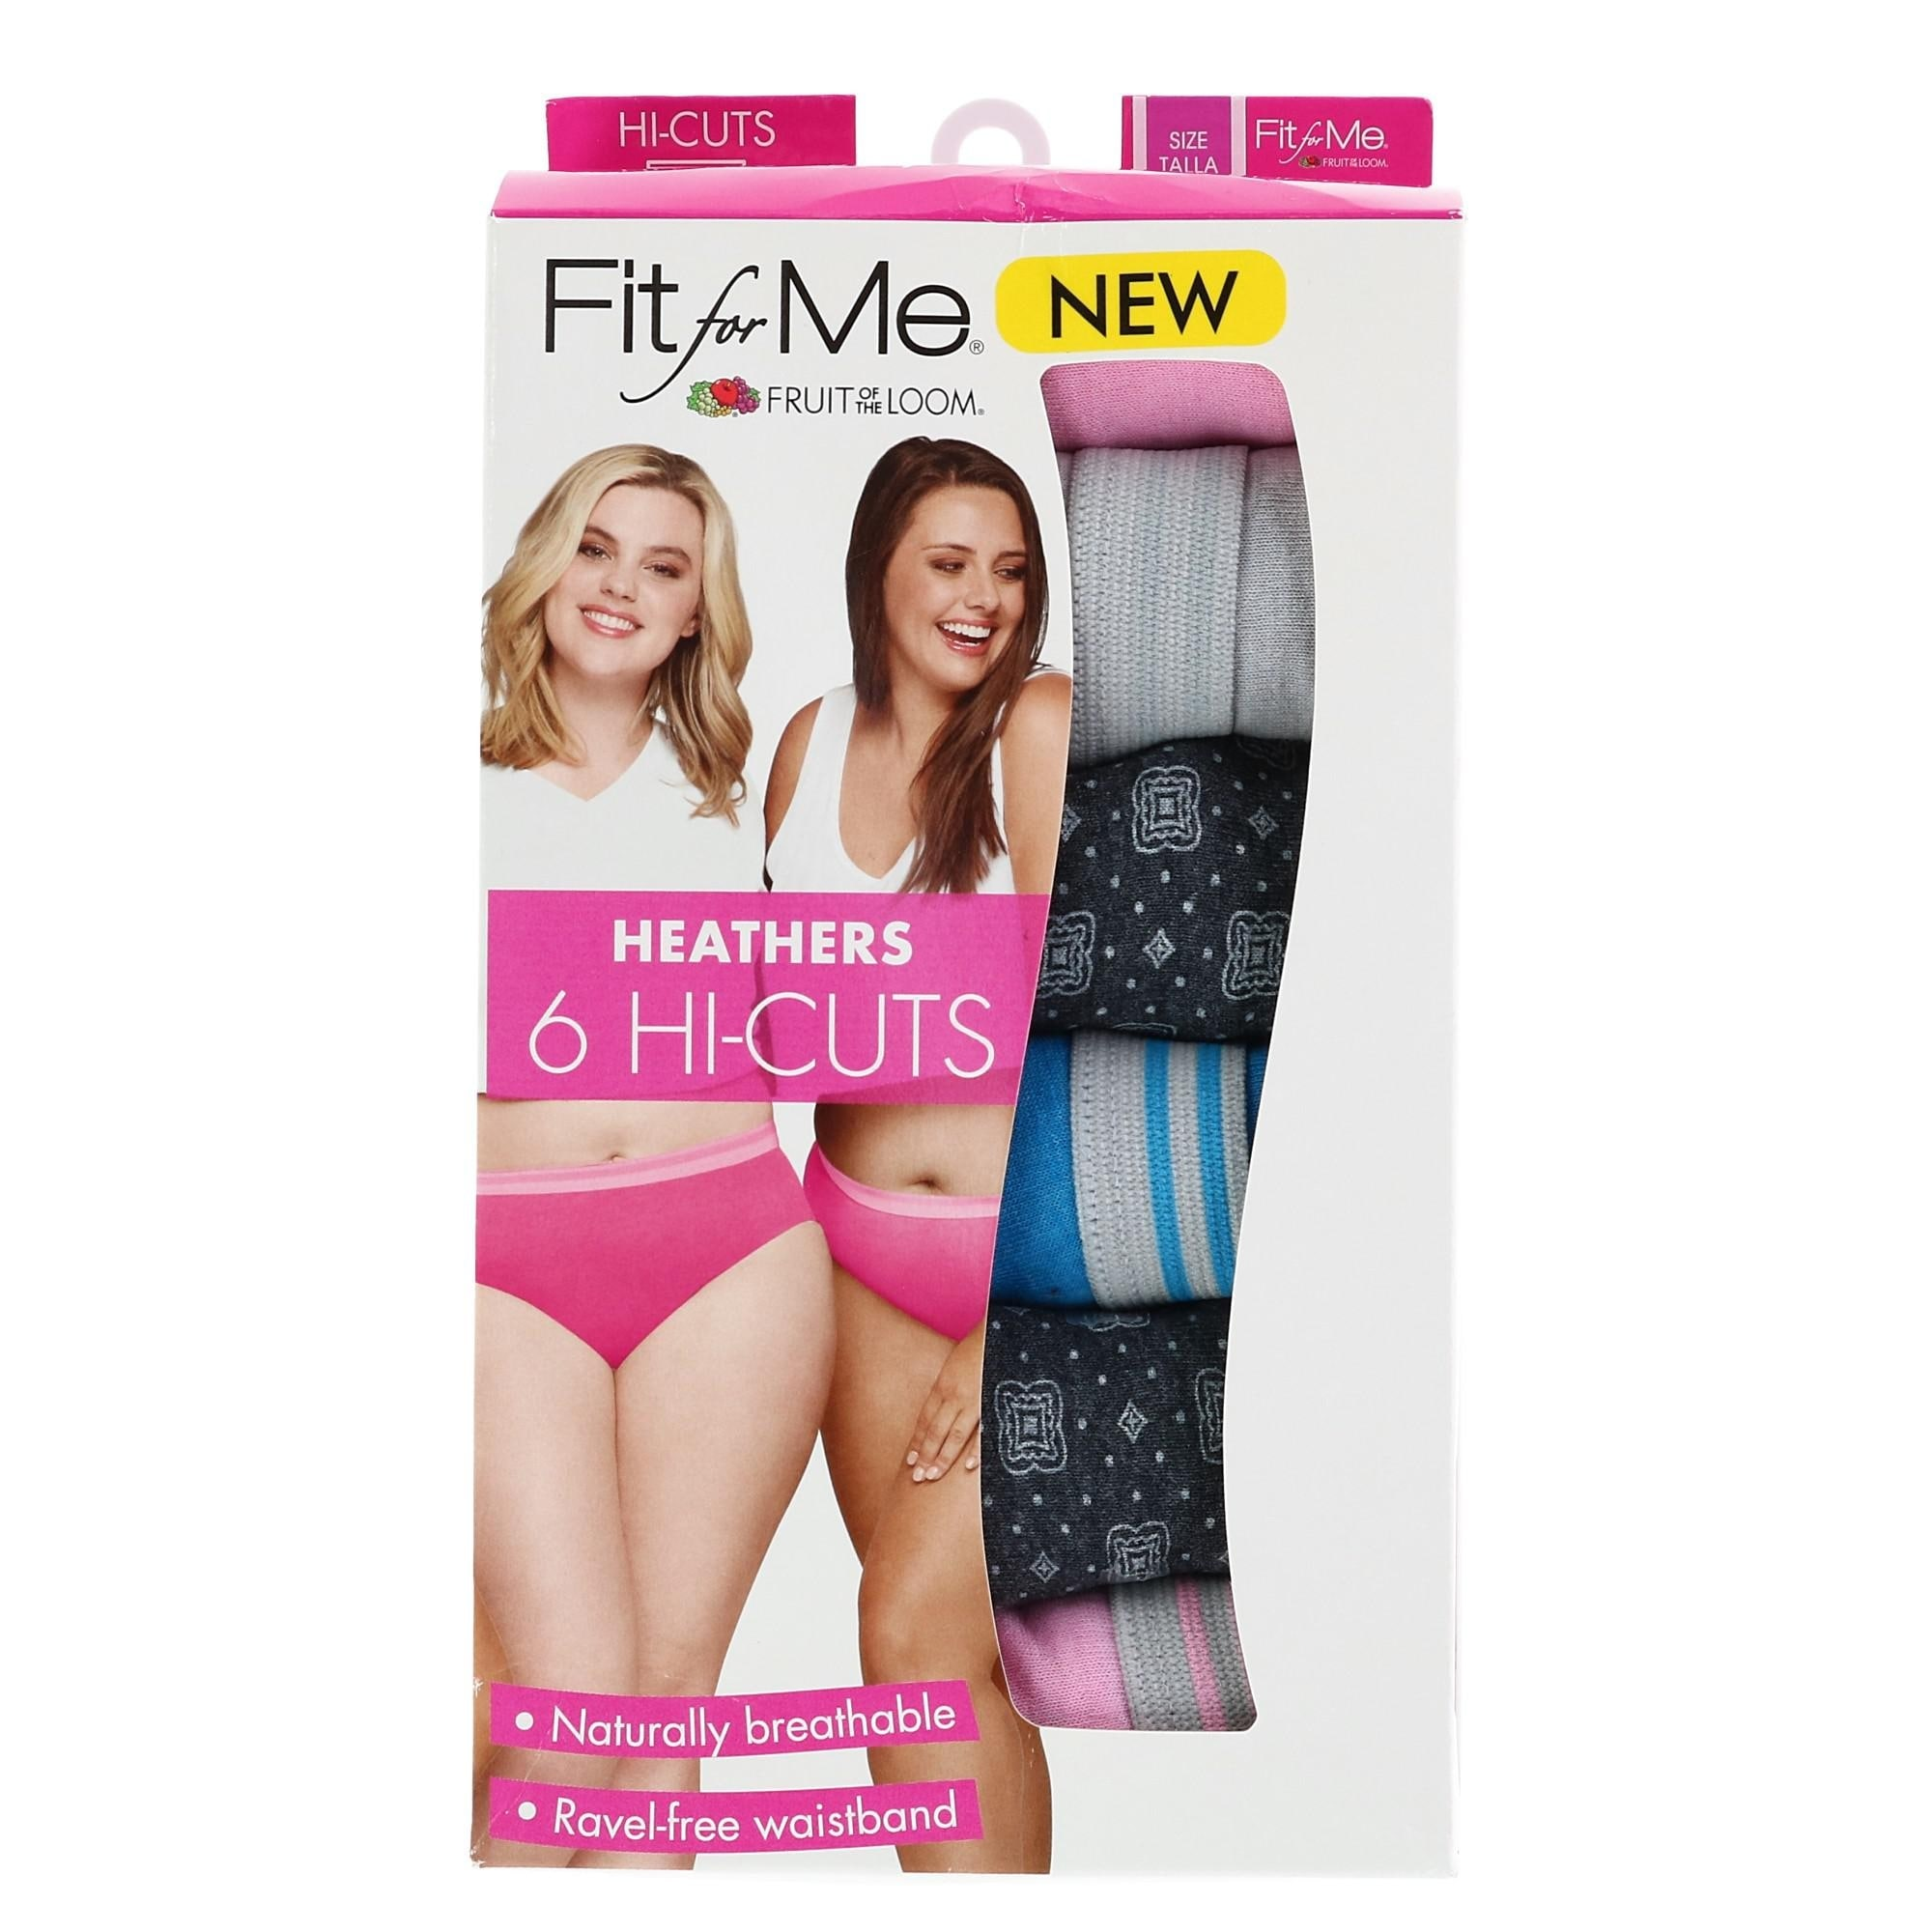 Fruit Of The Loom Women S Plus Size High Cut Underwear 6 Pair Pack Multi Overstock 27280118 It feels so much more comfortable that the usual. fruit of the loom women s plus size high cut underwear 6 pair pack multi